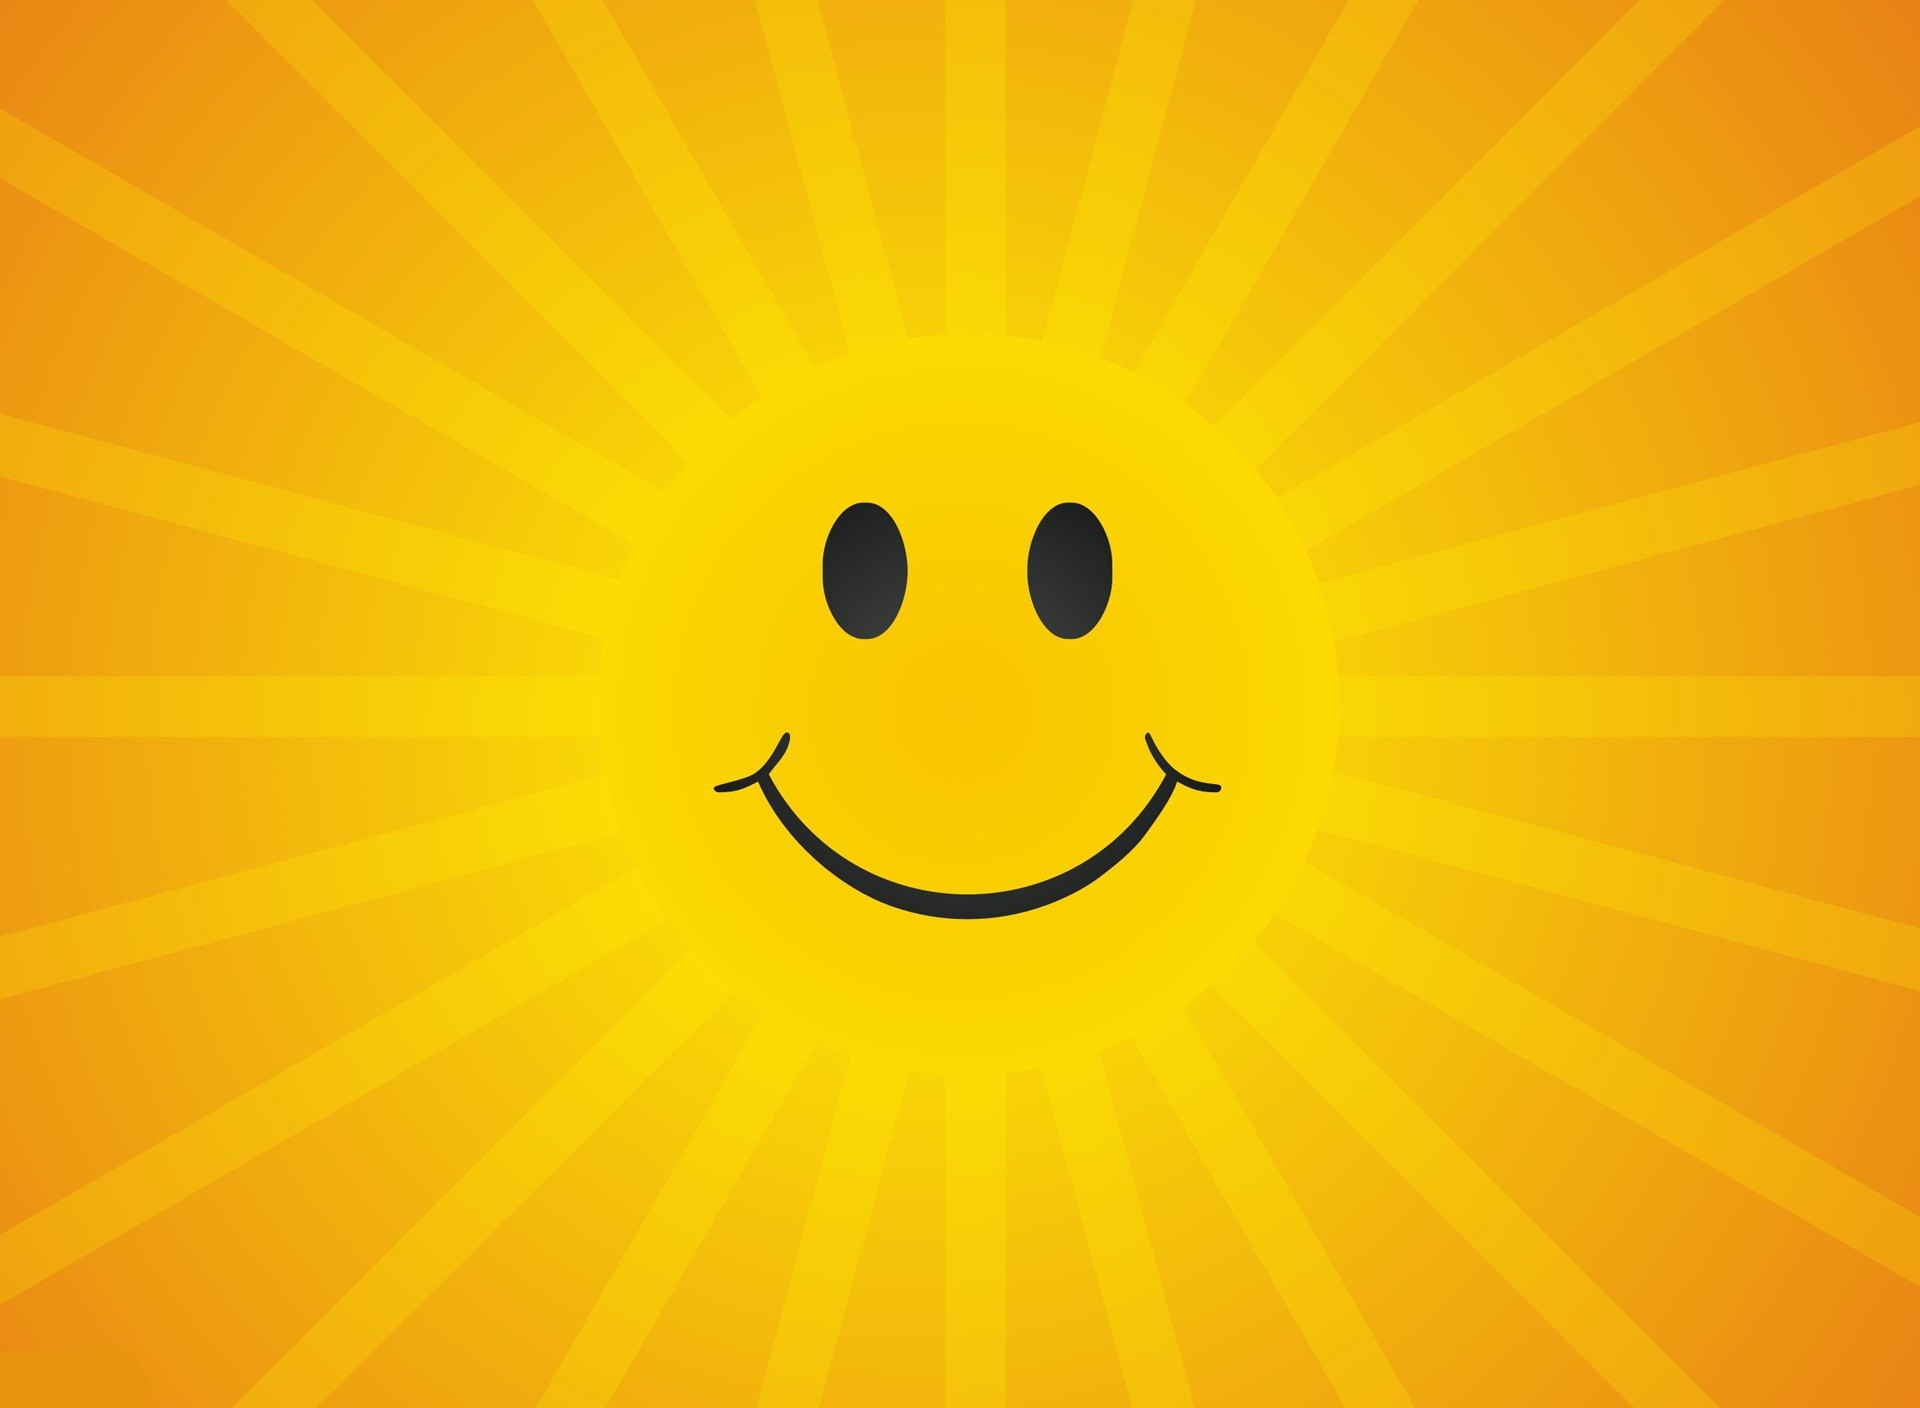 1920x1408  Smiley Face Sunshine Wallpaper Screensaver